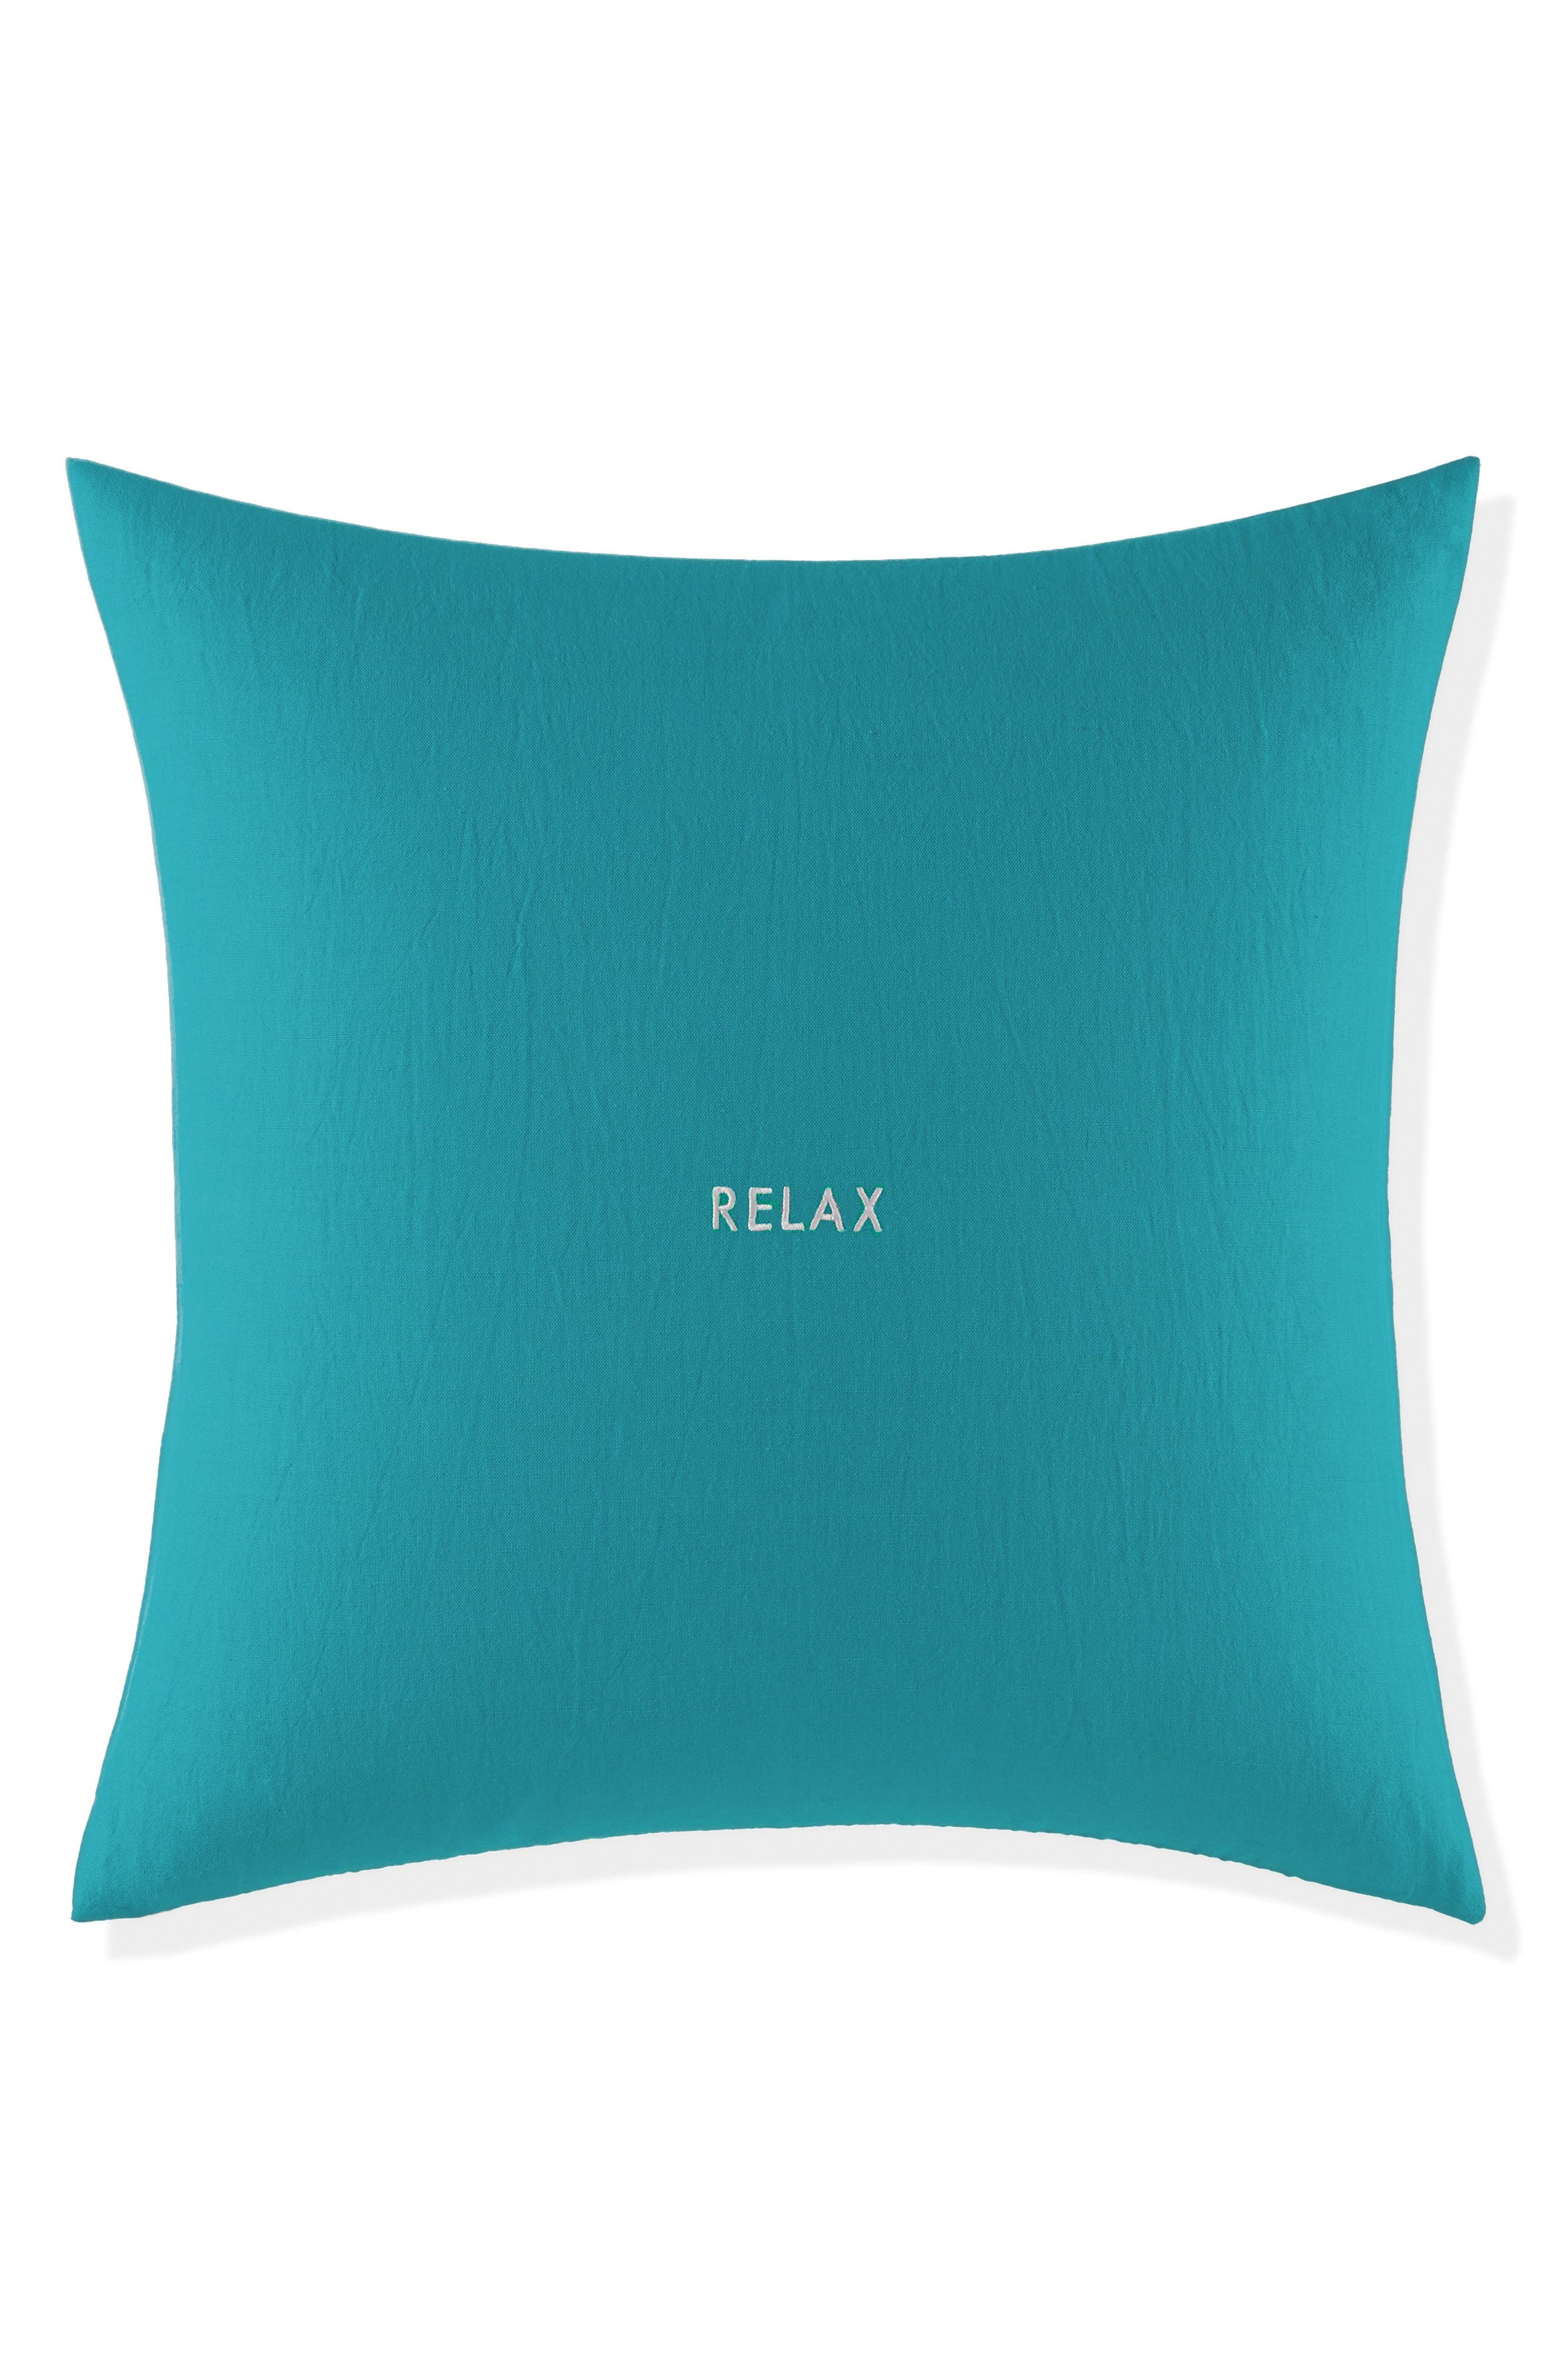 relax pillow,                         Main,                         color, 440